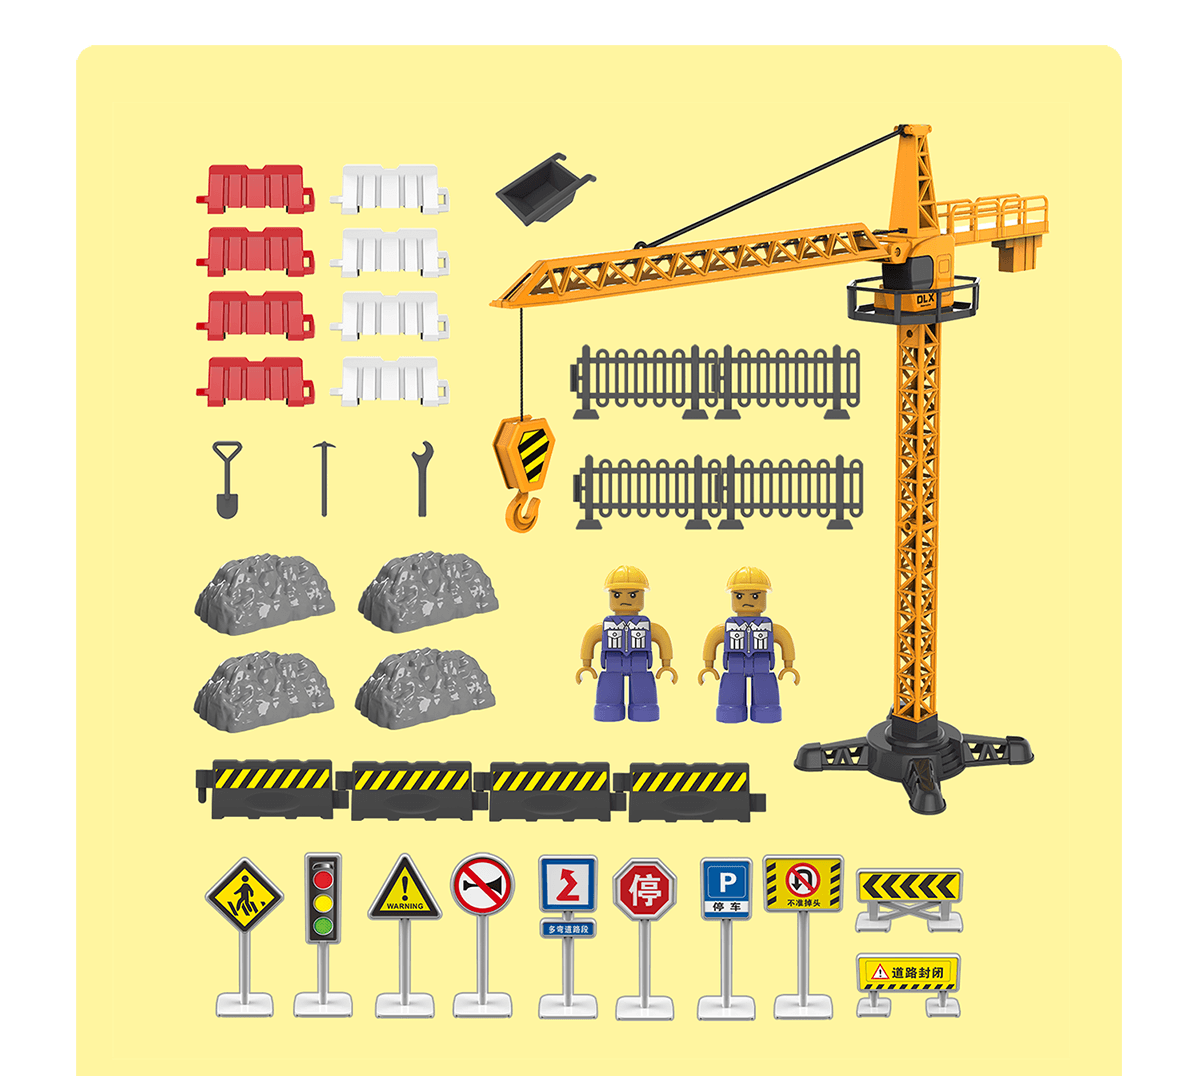 construction tower crane site road signs traffic light accessories diecast toy city building play set engineering toys for boys [ 1200 x 1076 Pixel ]